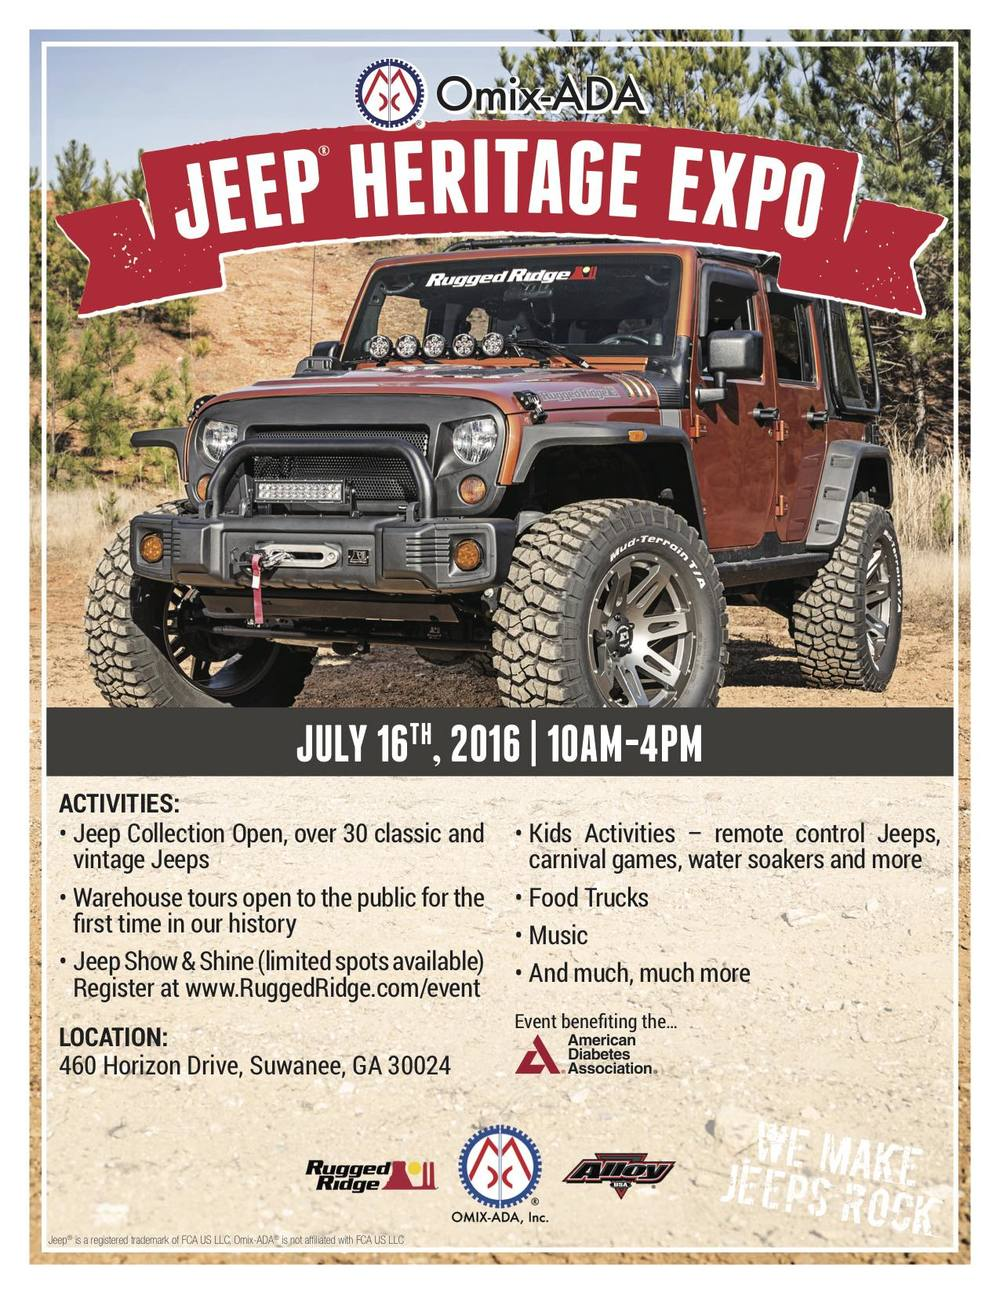 Omix ADA Jeep Heritage Festival Flyer